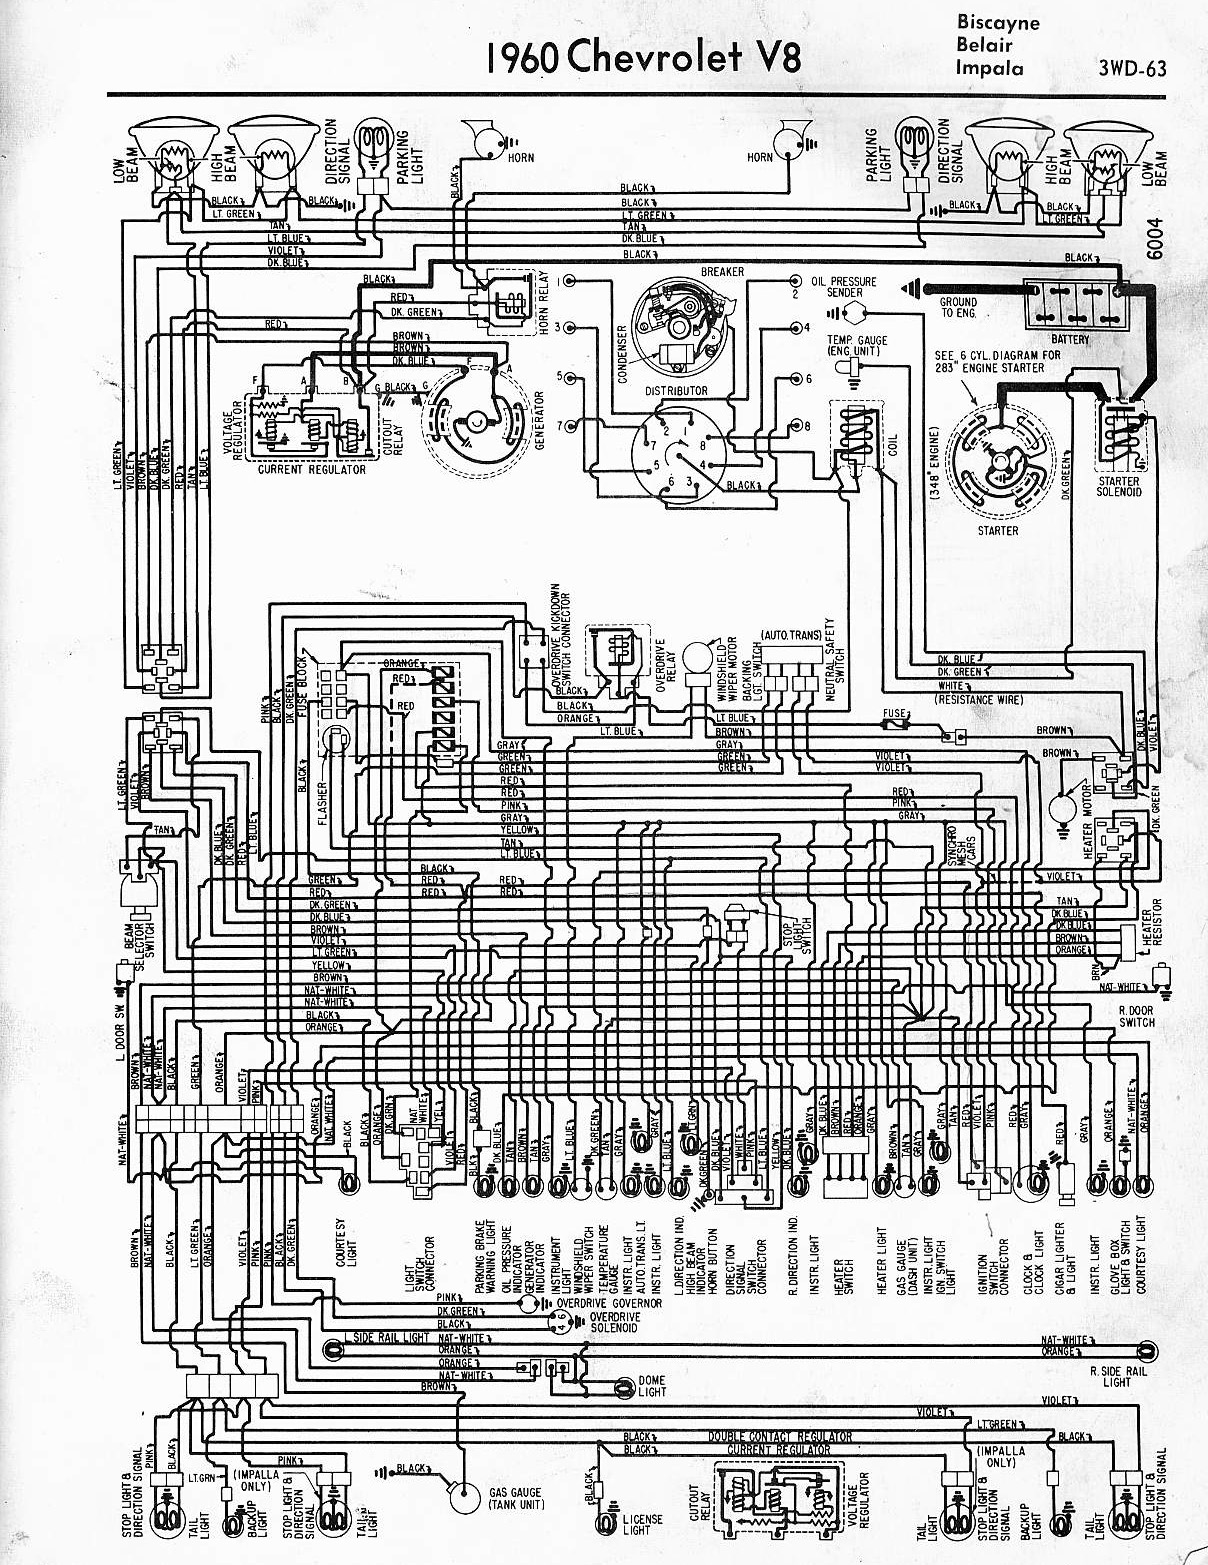 el camino wiring schematic wiring diagrams 59 60  64 88 el camino central forum  wiring diagrams 59 60  64 88 el